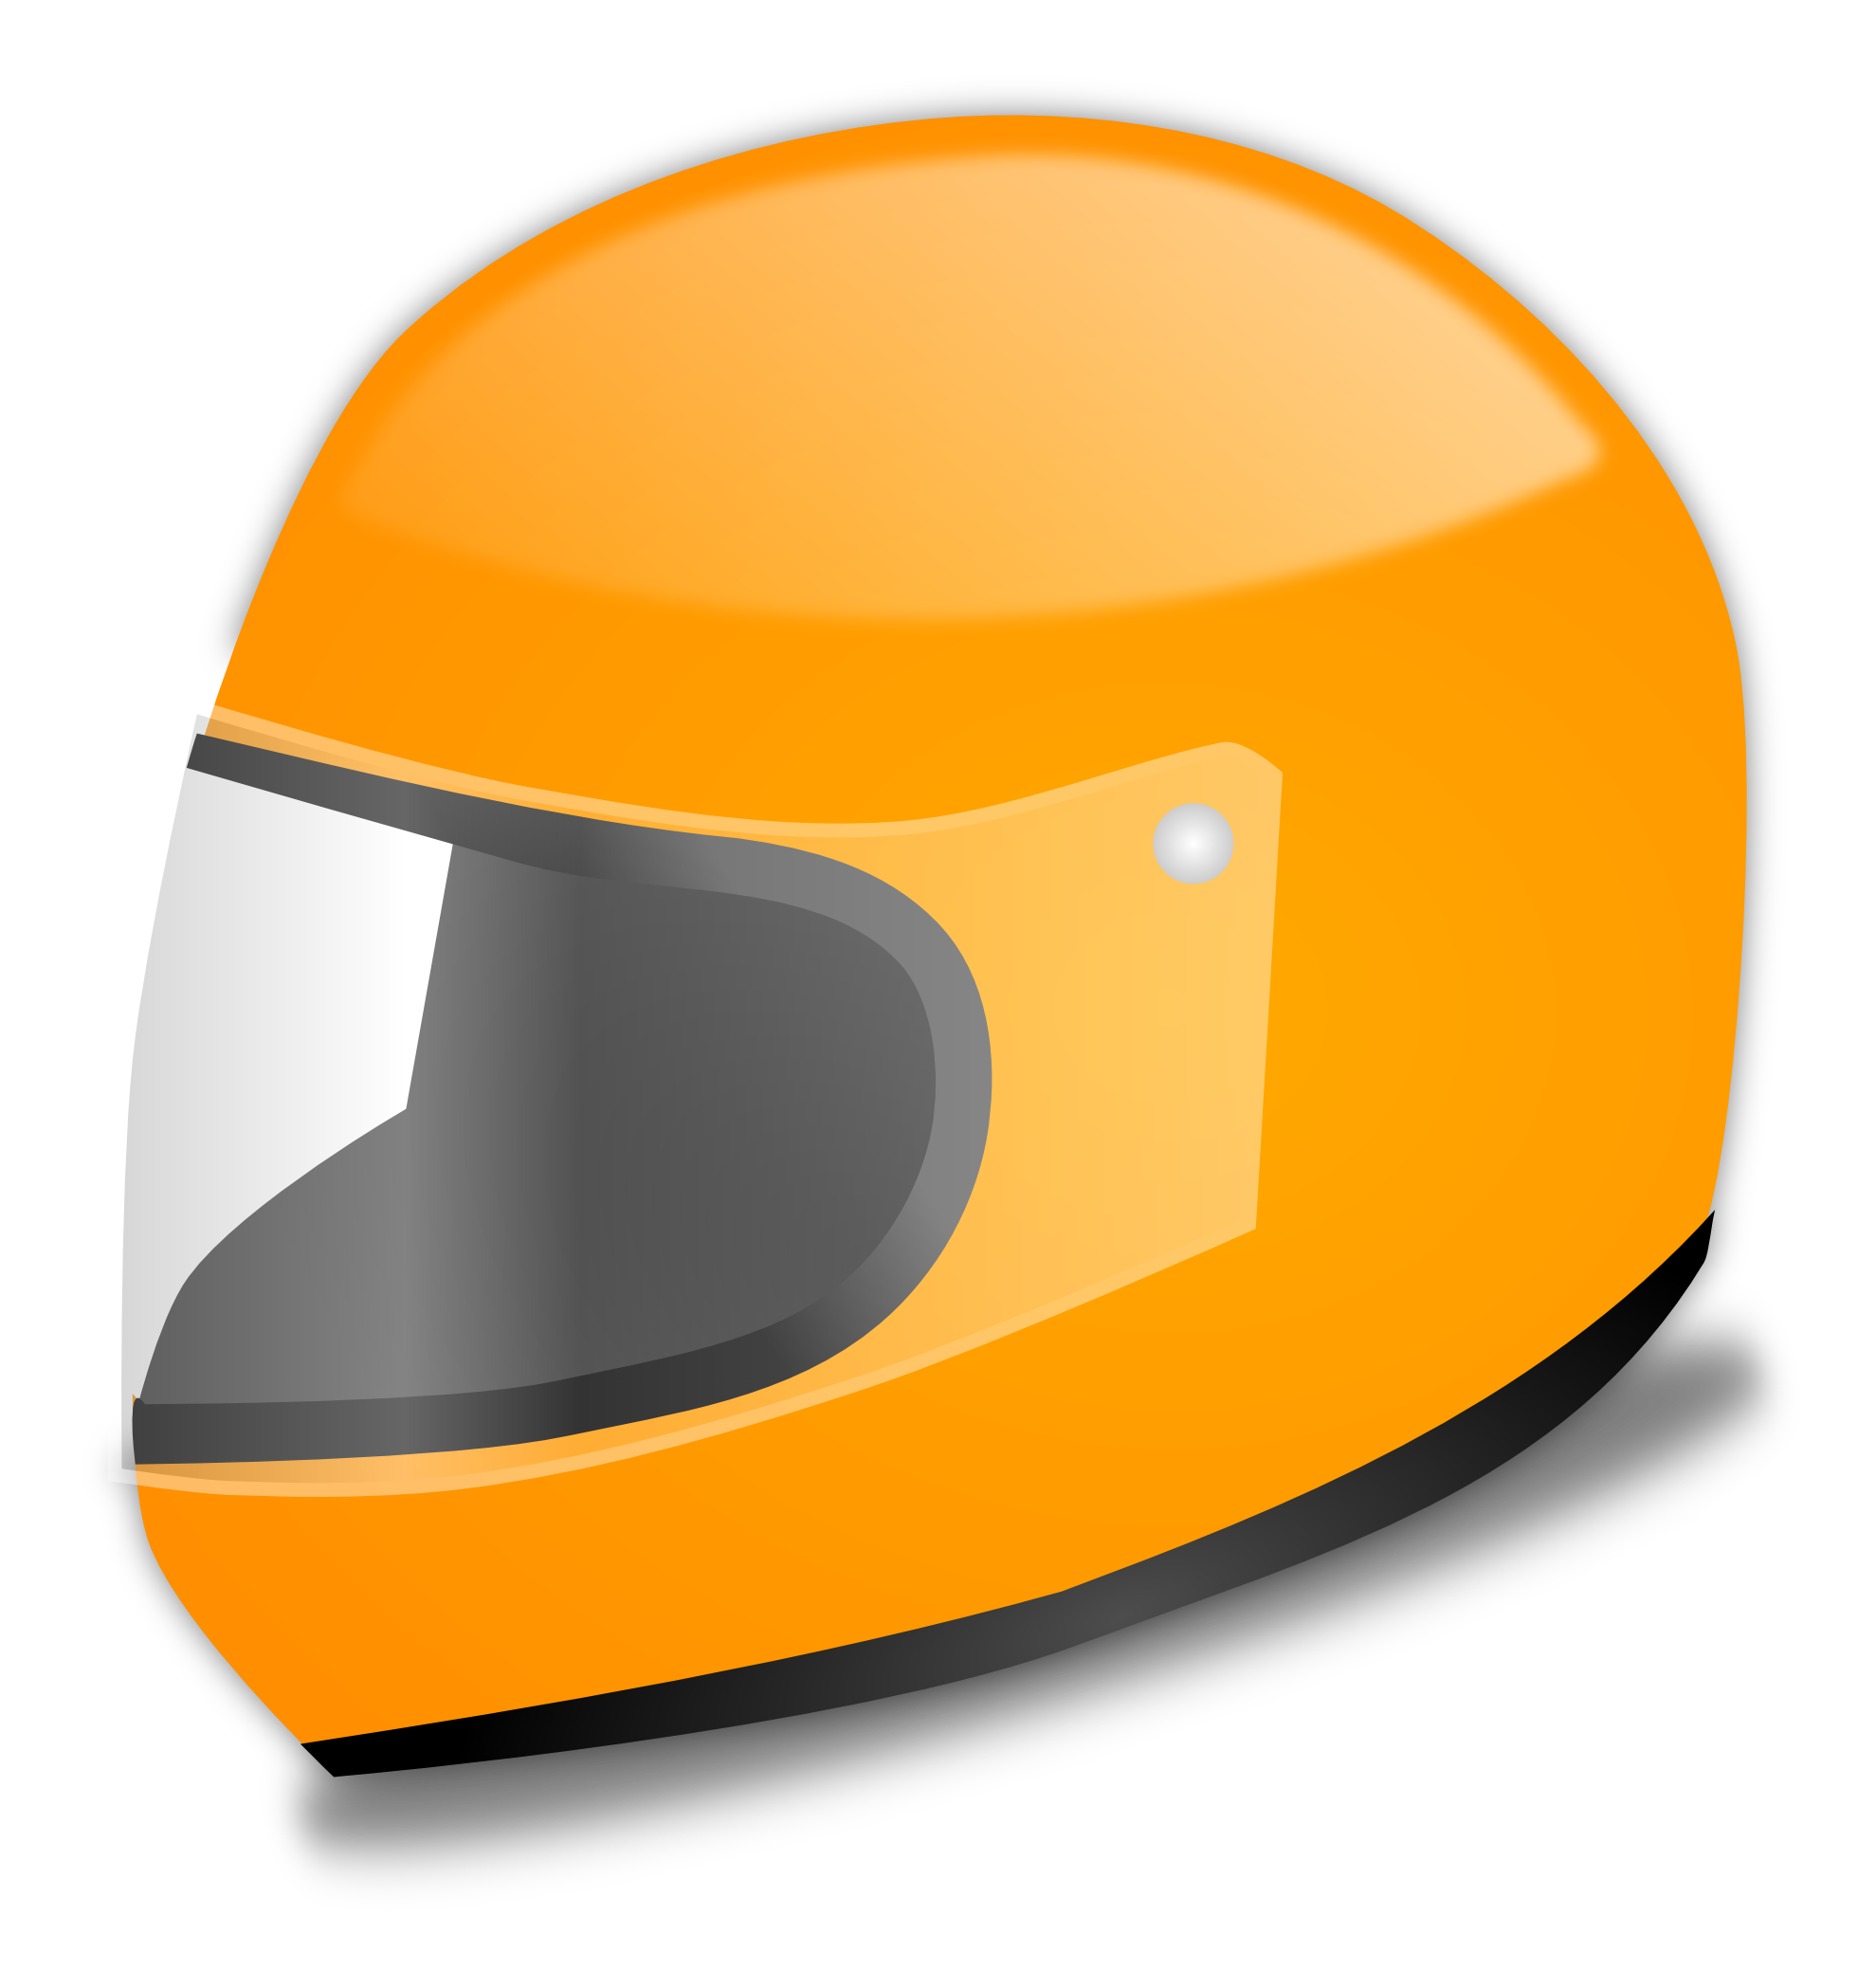 Helmet pencil and in. Motorcycle clipart retro motorcycle